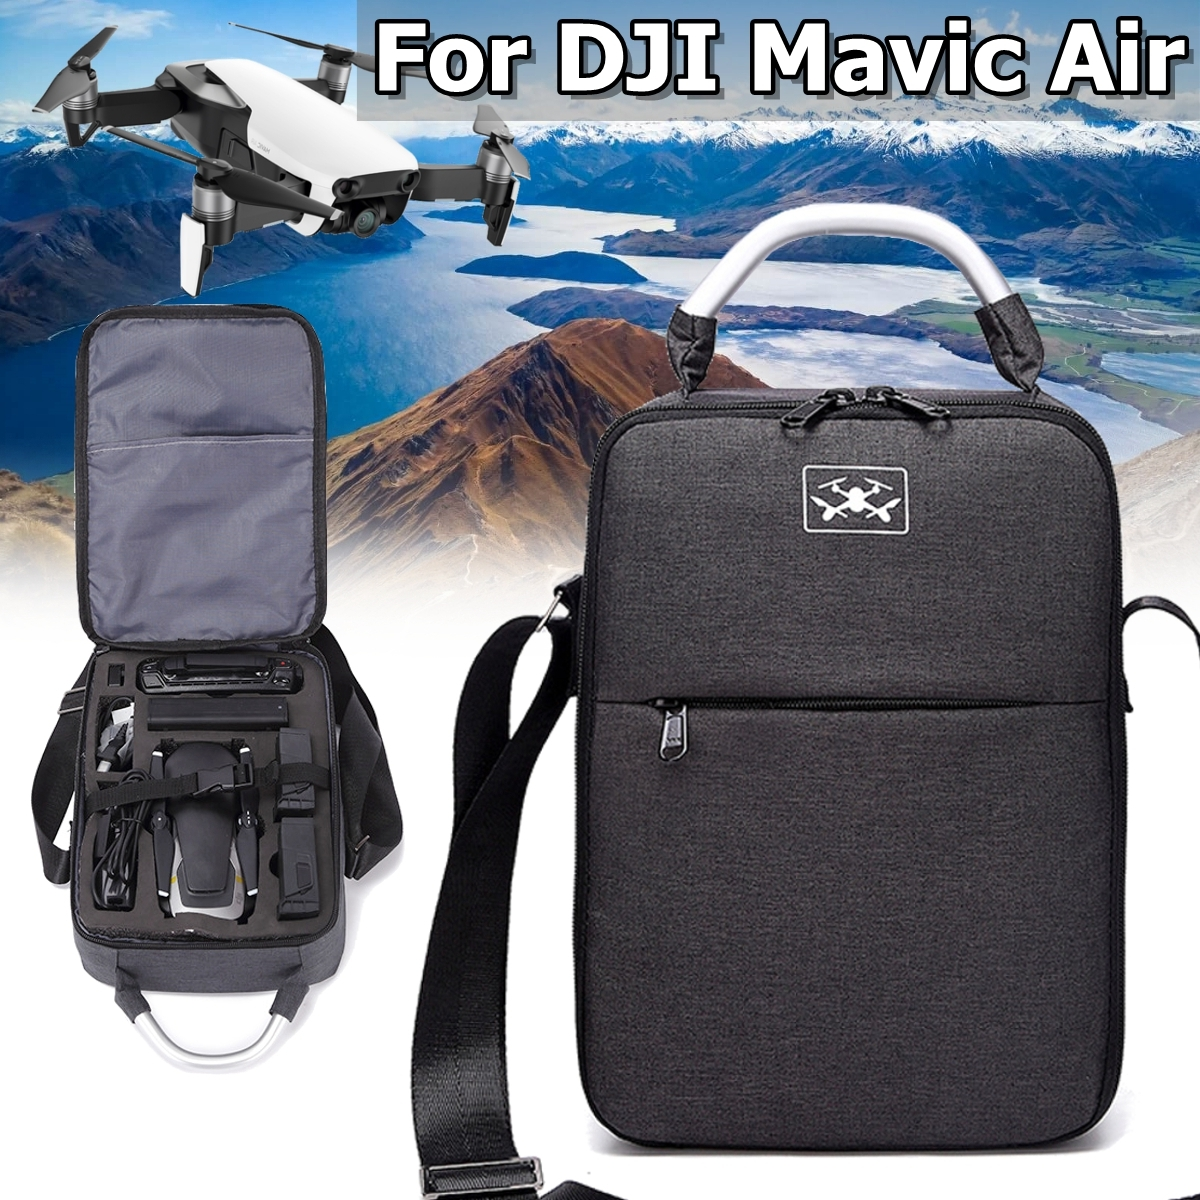 Waterproof Shoulder Bag Backpack Storage Carrying Case Box For DJI Mavic Air Drone